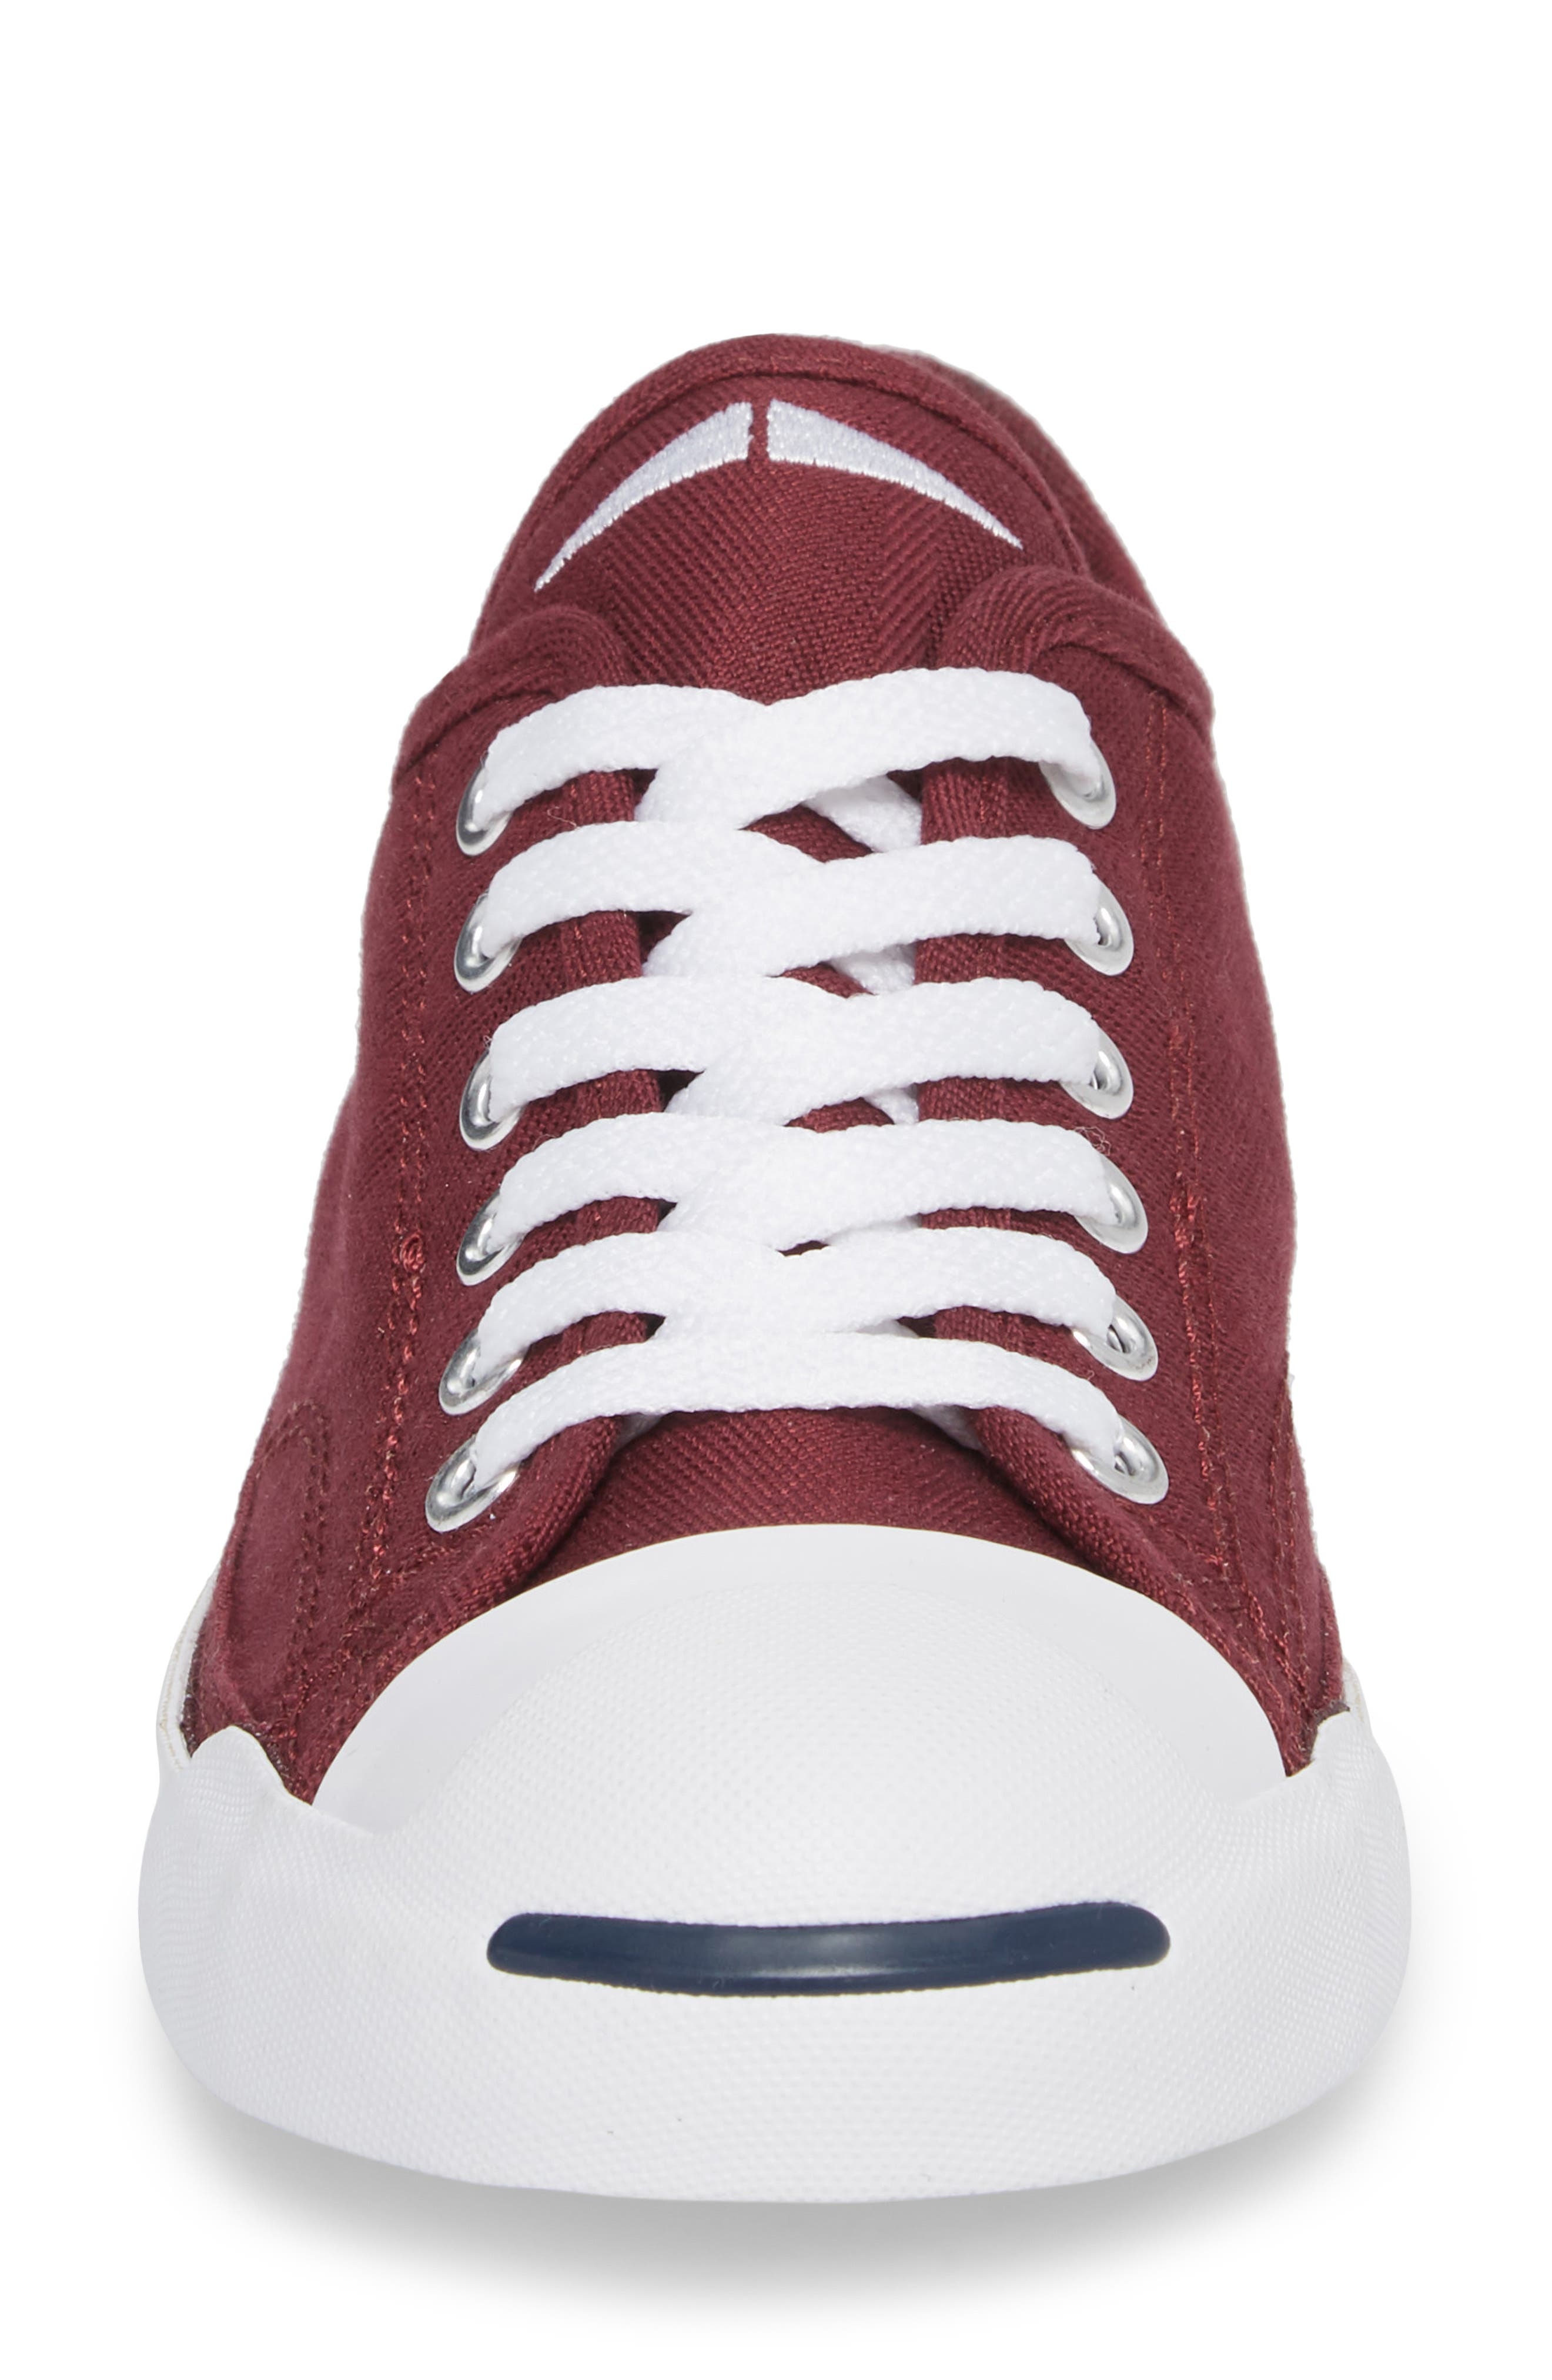 ,                             Jack Purcell Low Top Sneaker,                             Alternate thumbnail 58, color,                             930